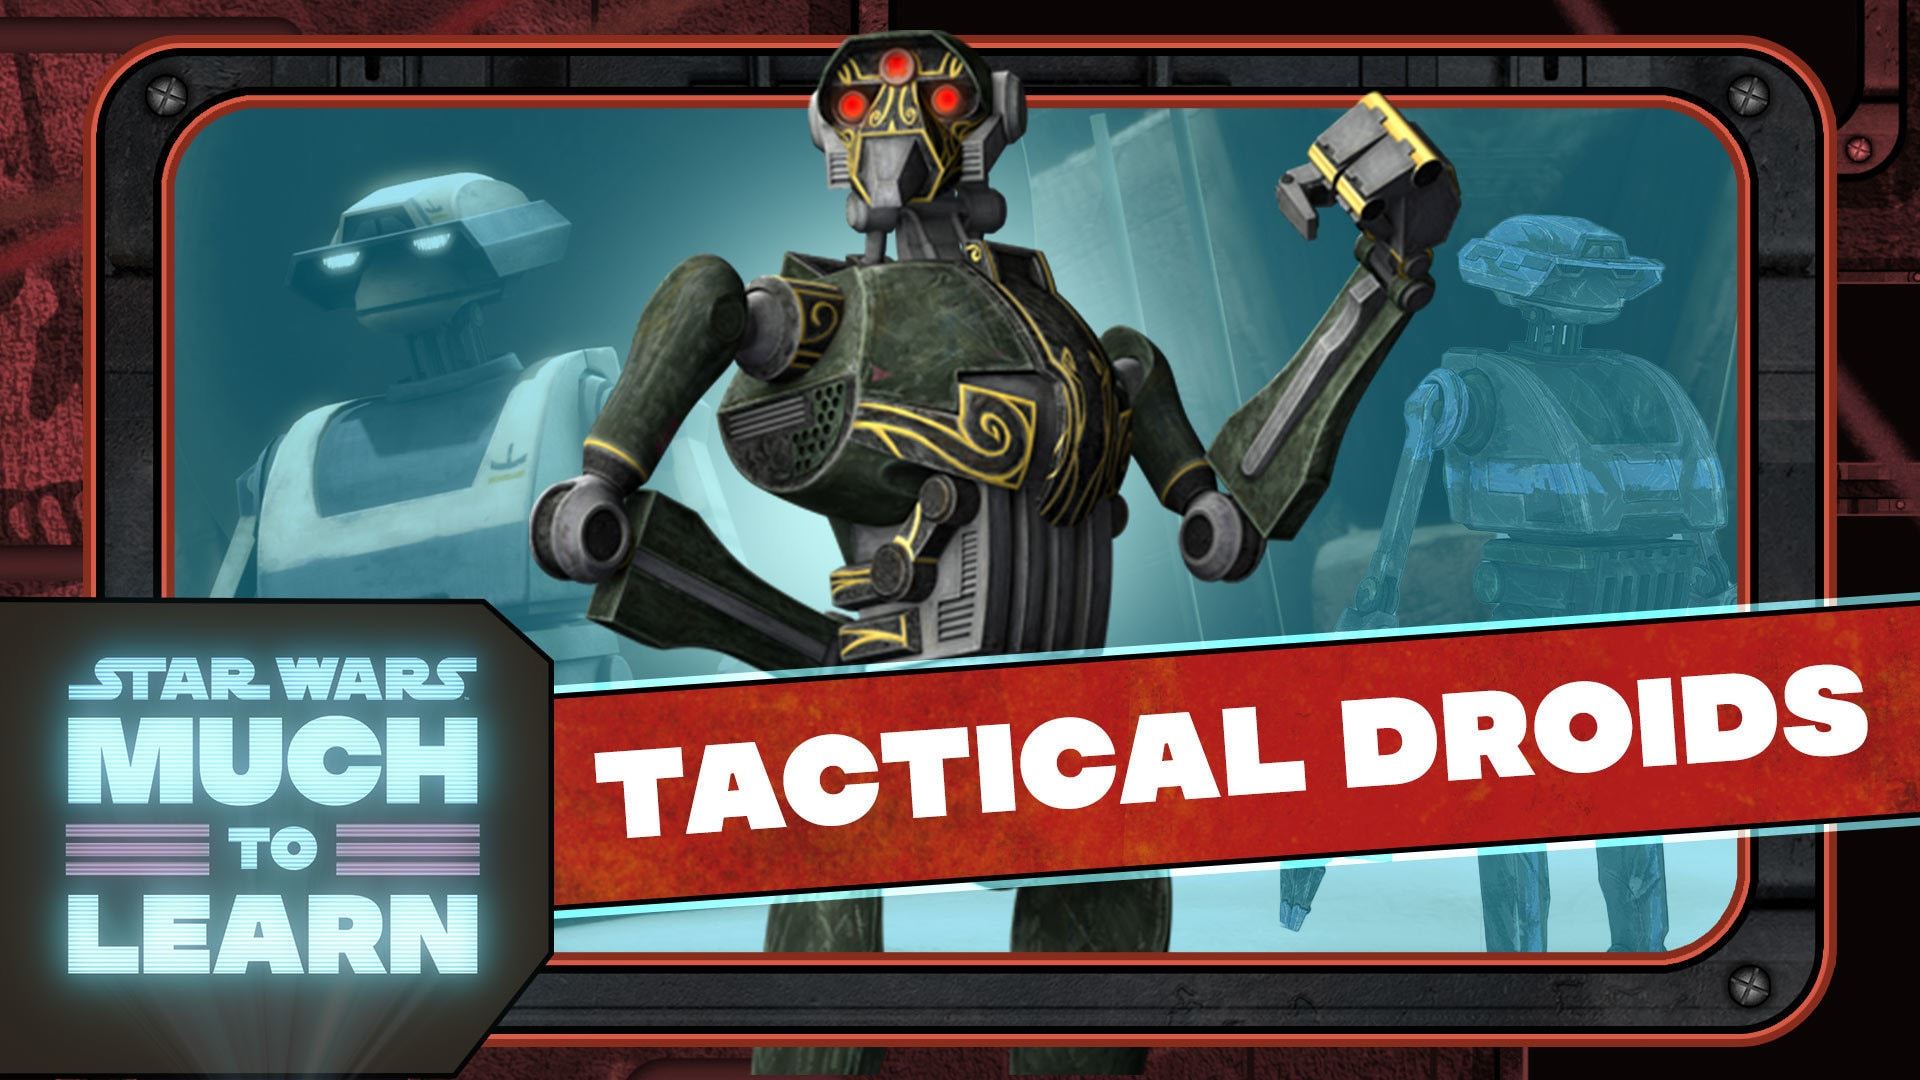 Tactical Droids | Star Wars: Much to Learn